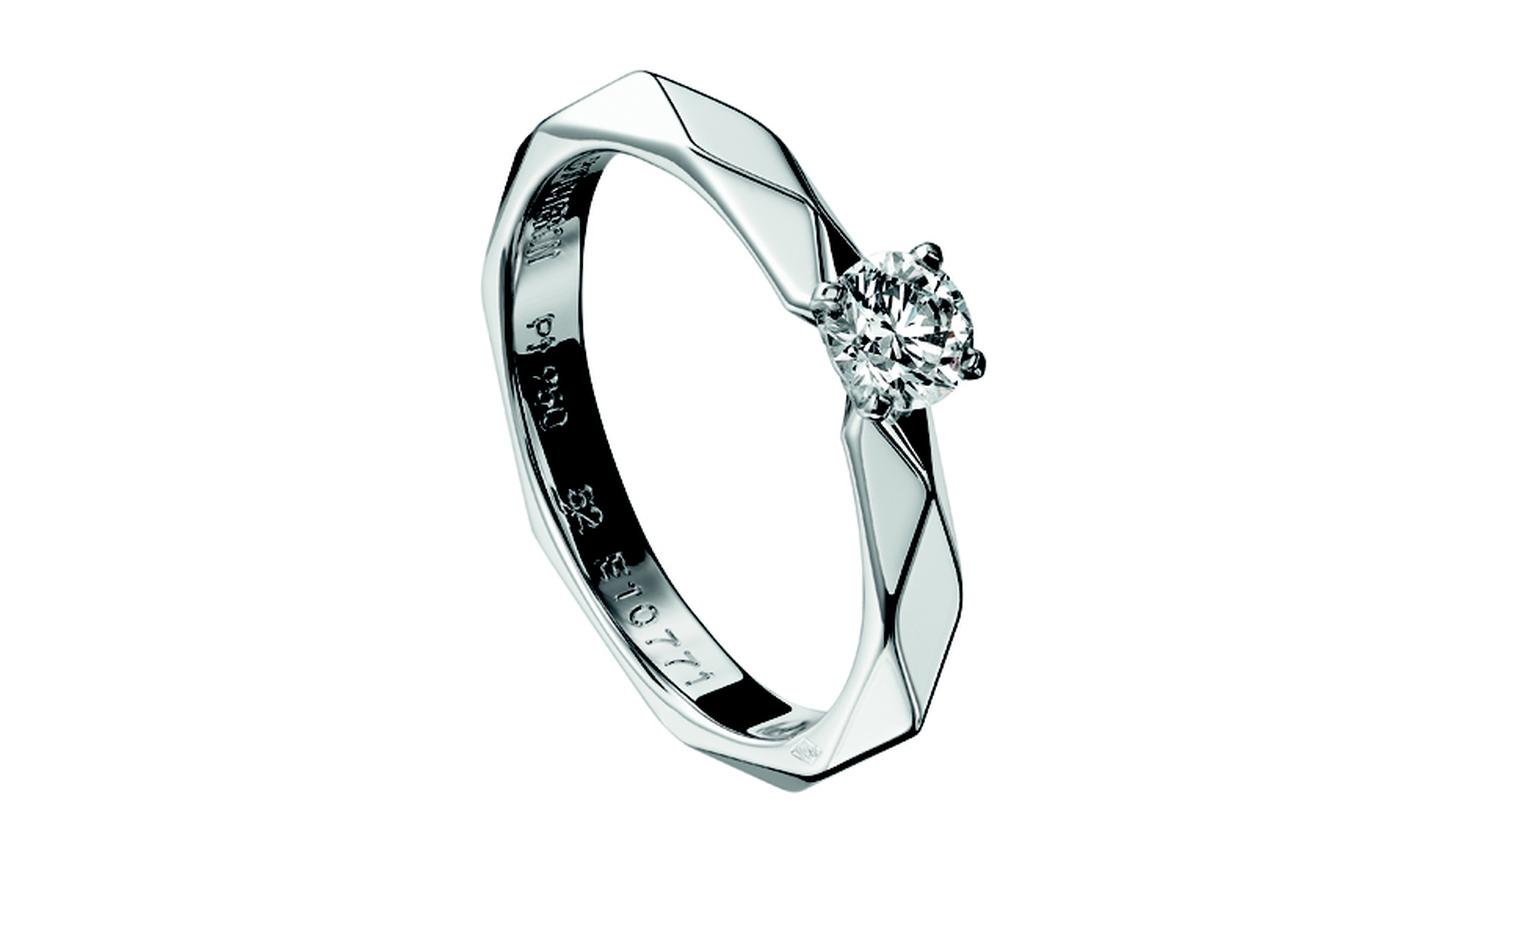 BOUCHERON, Facette Solitaire in white gold. Price from £7,900